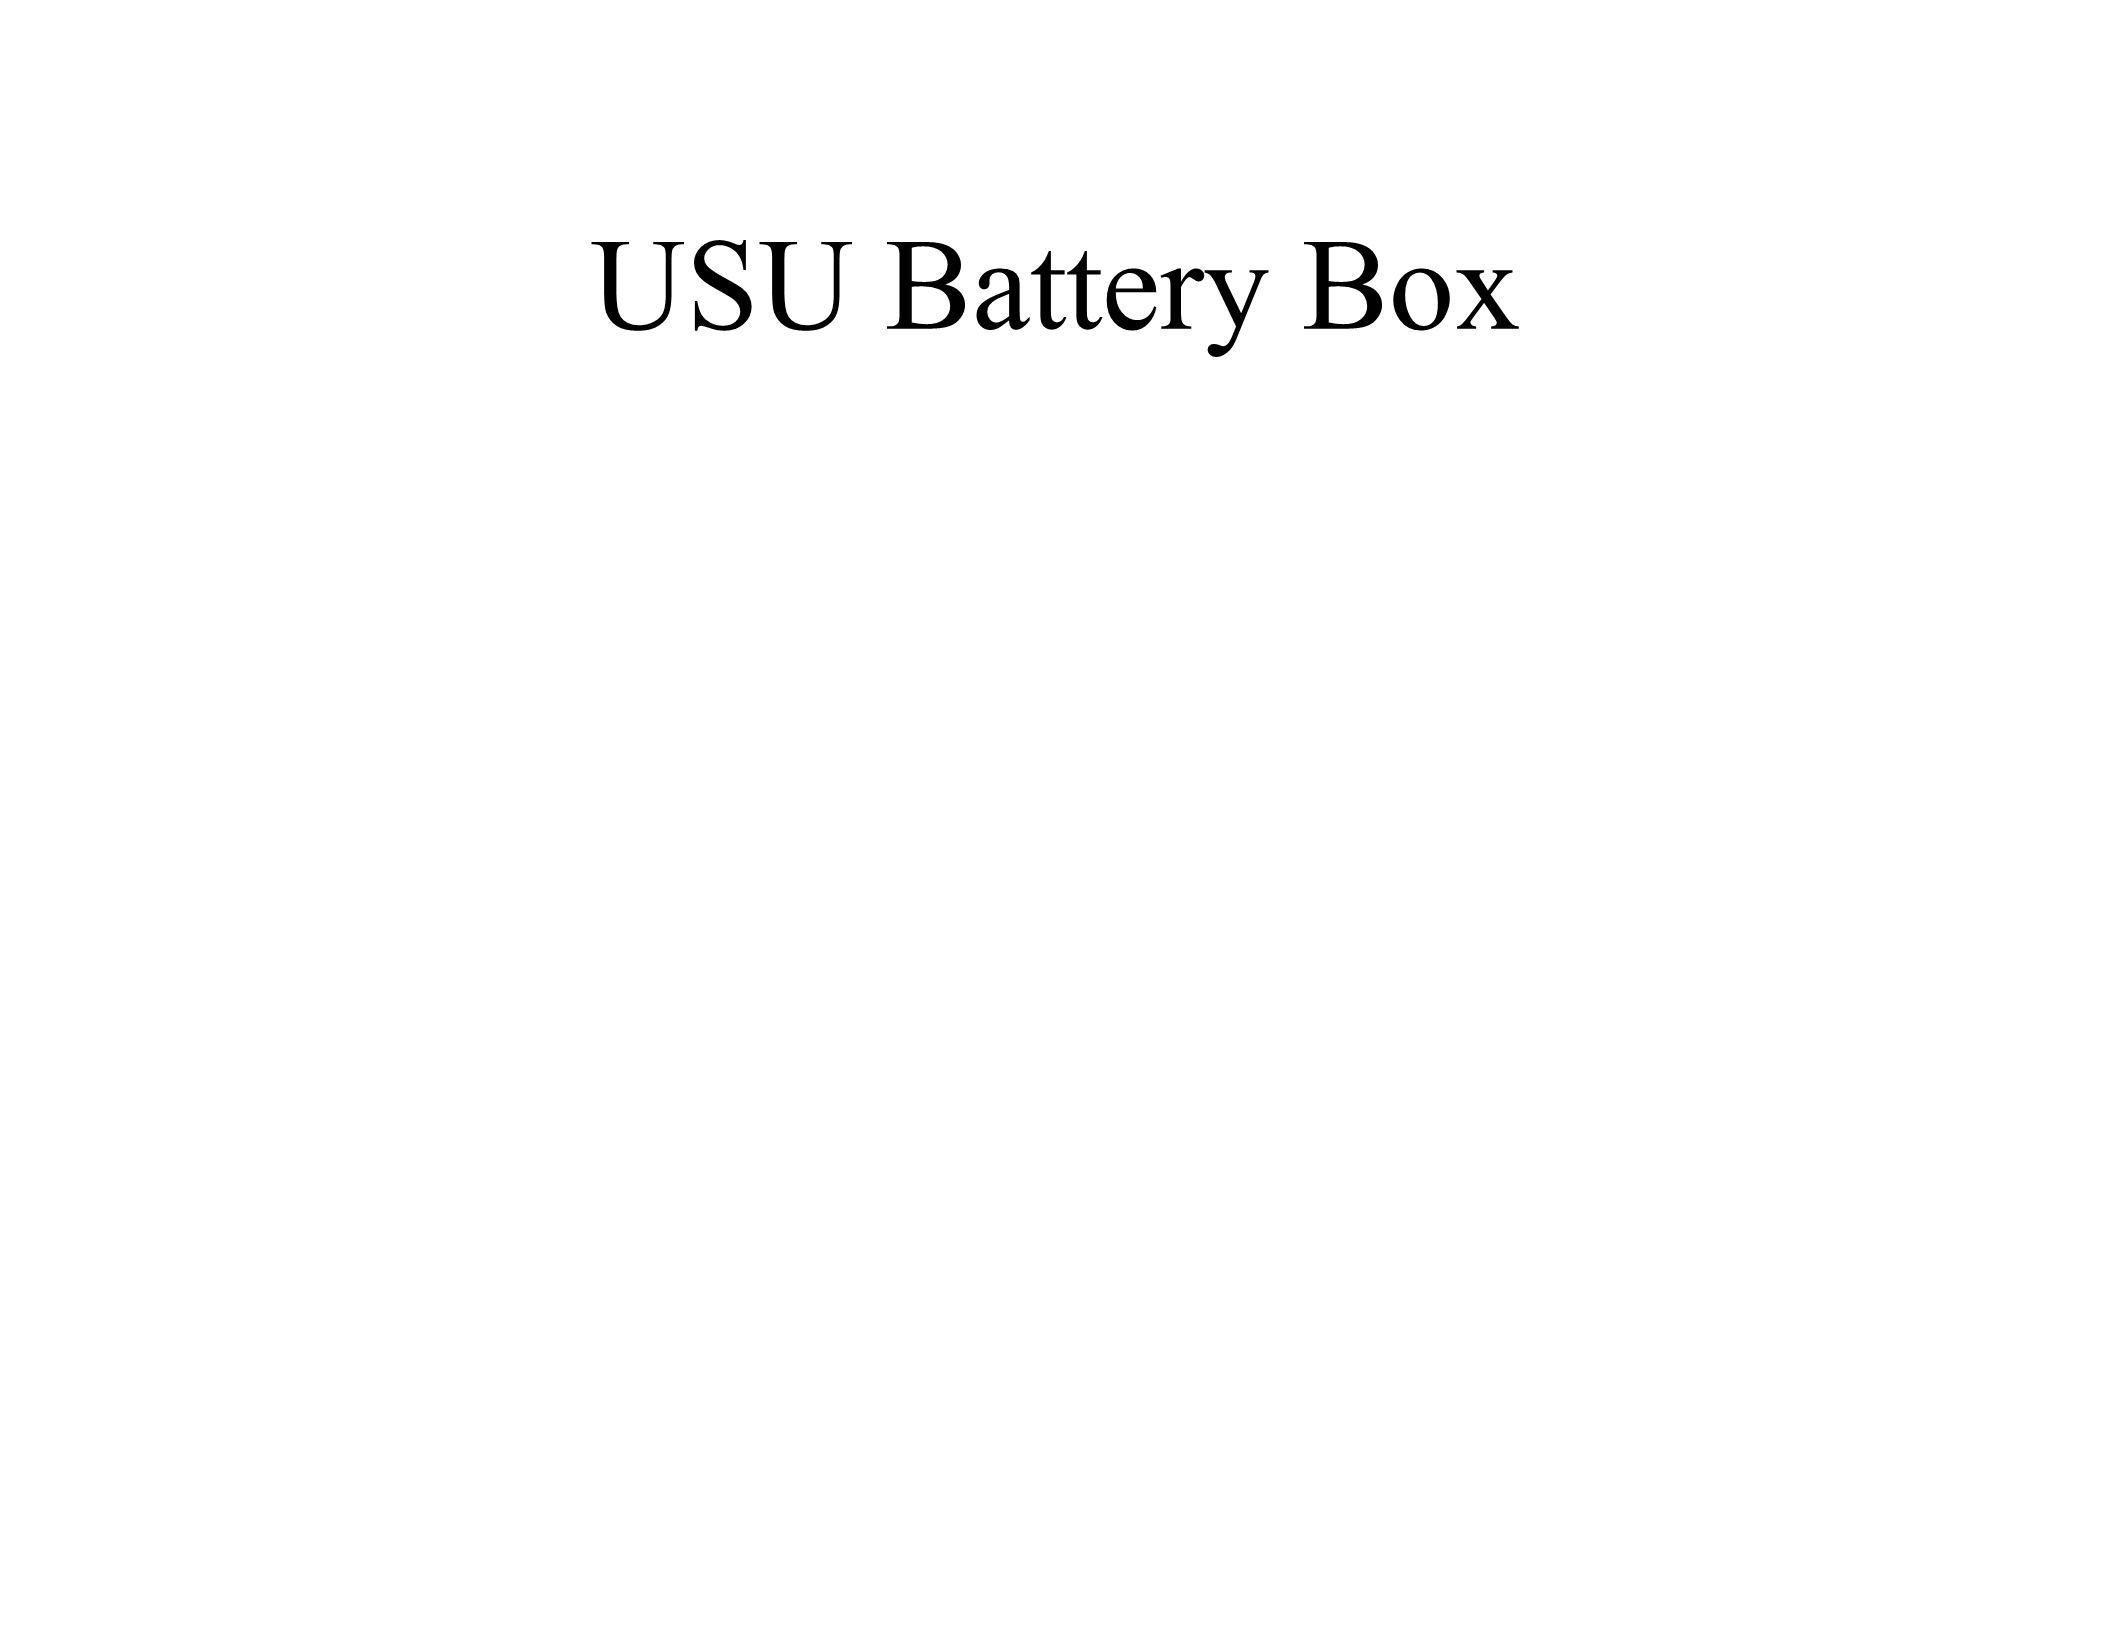 USU Battery Box